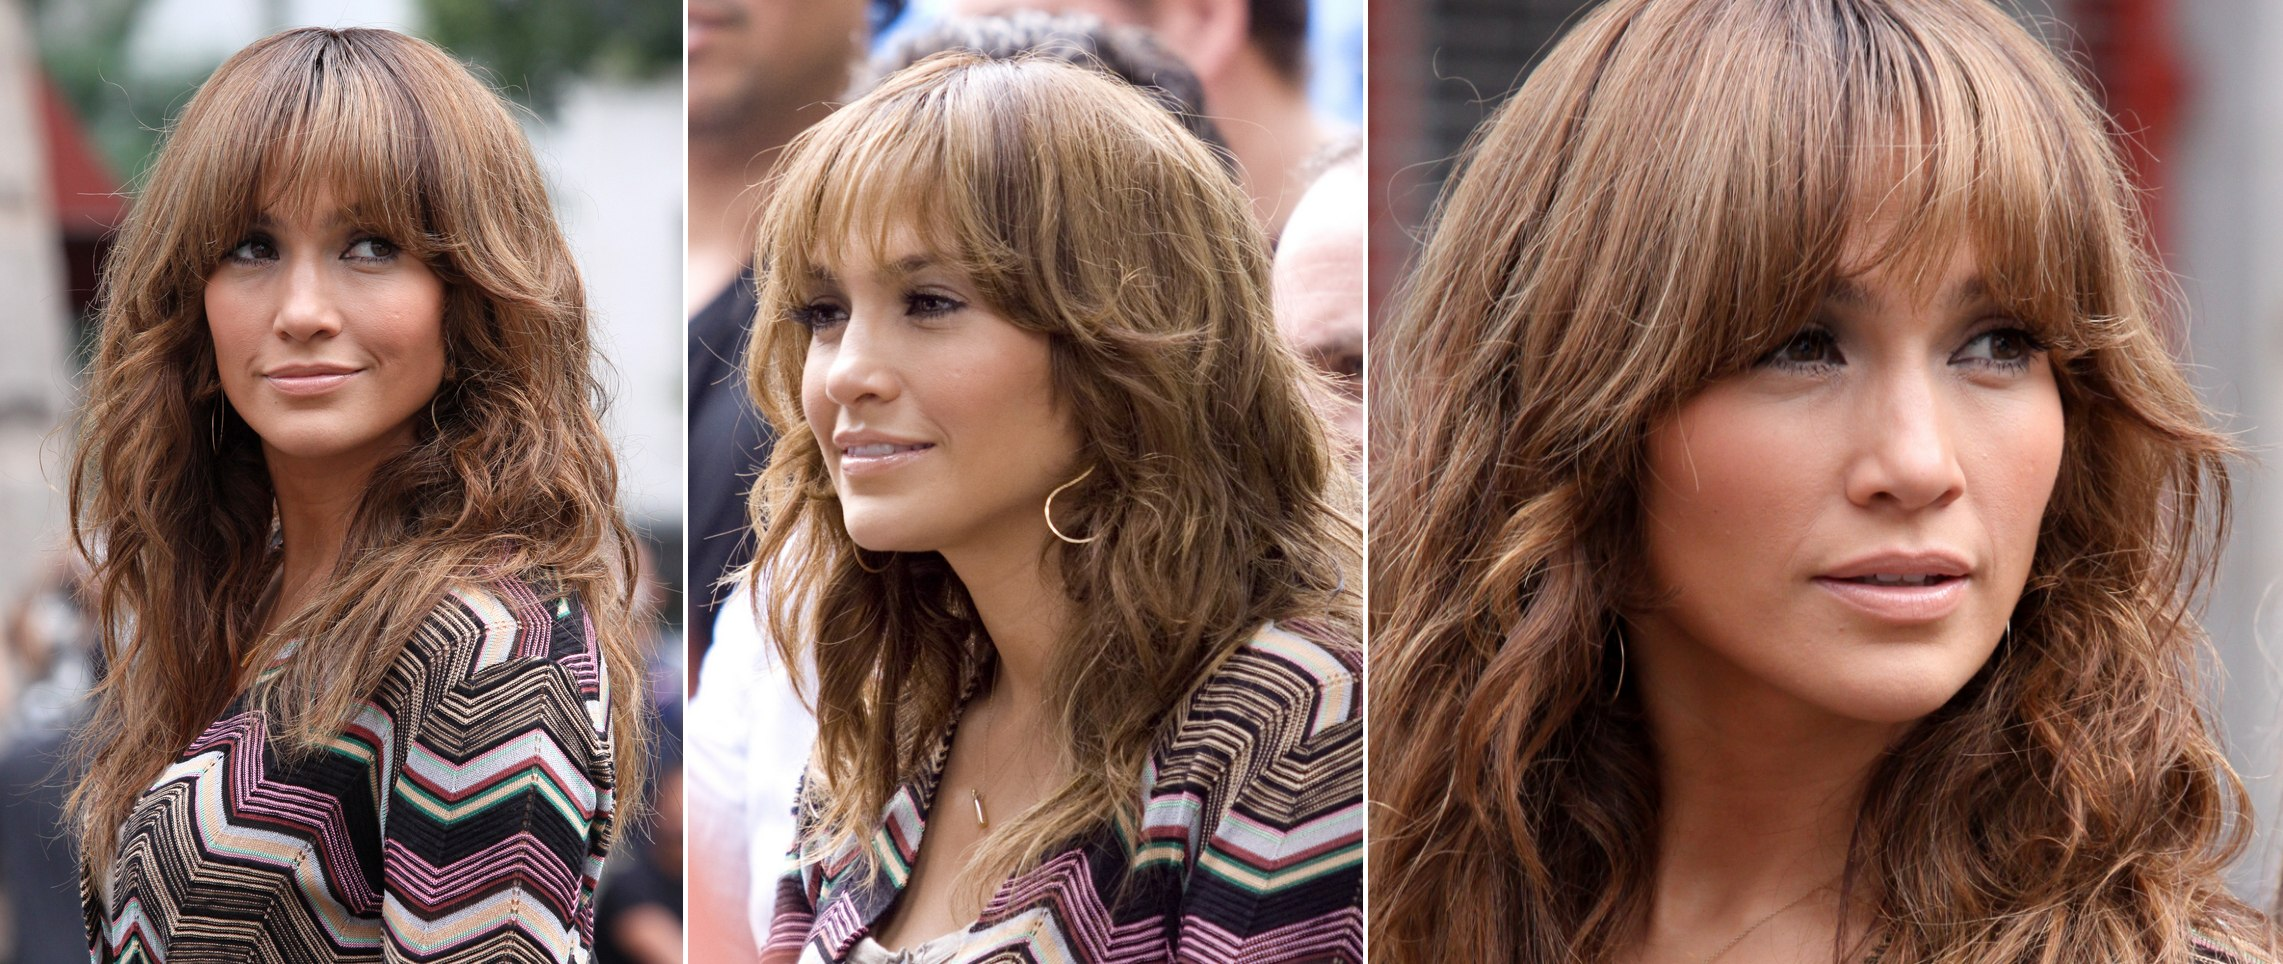 Jennifer Lopez wearing her hair long with bangs